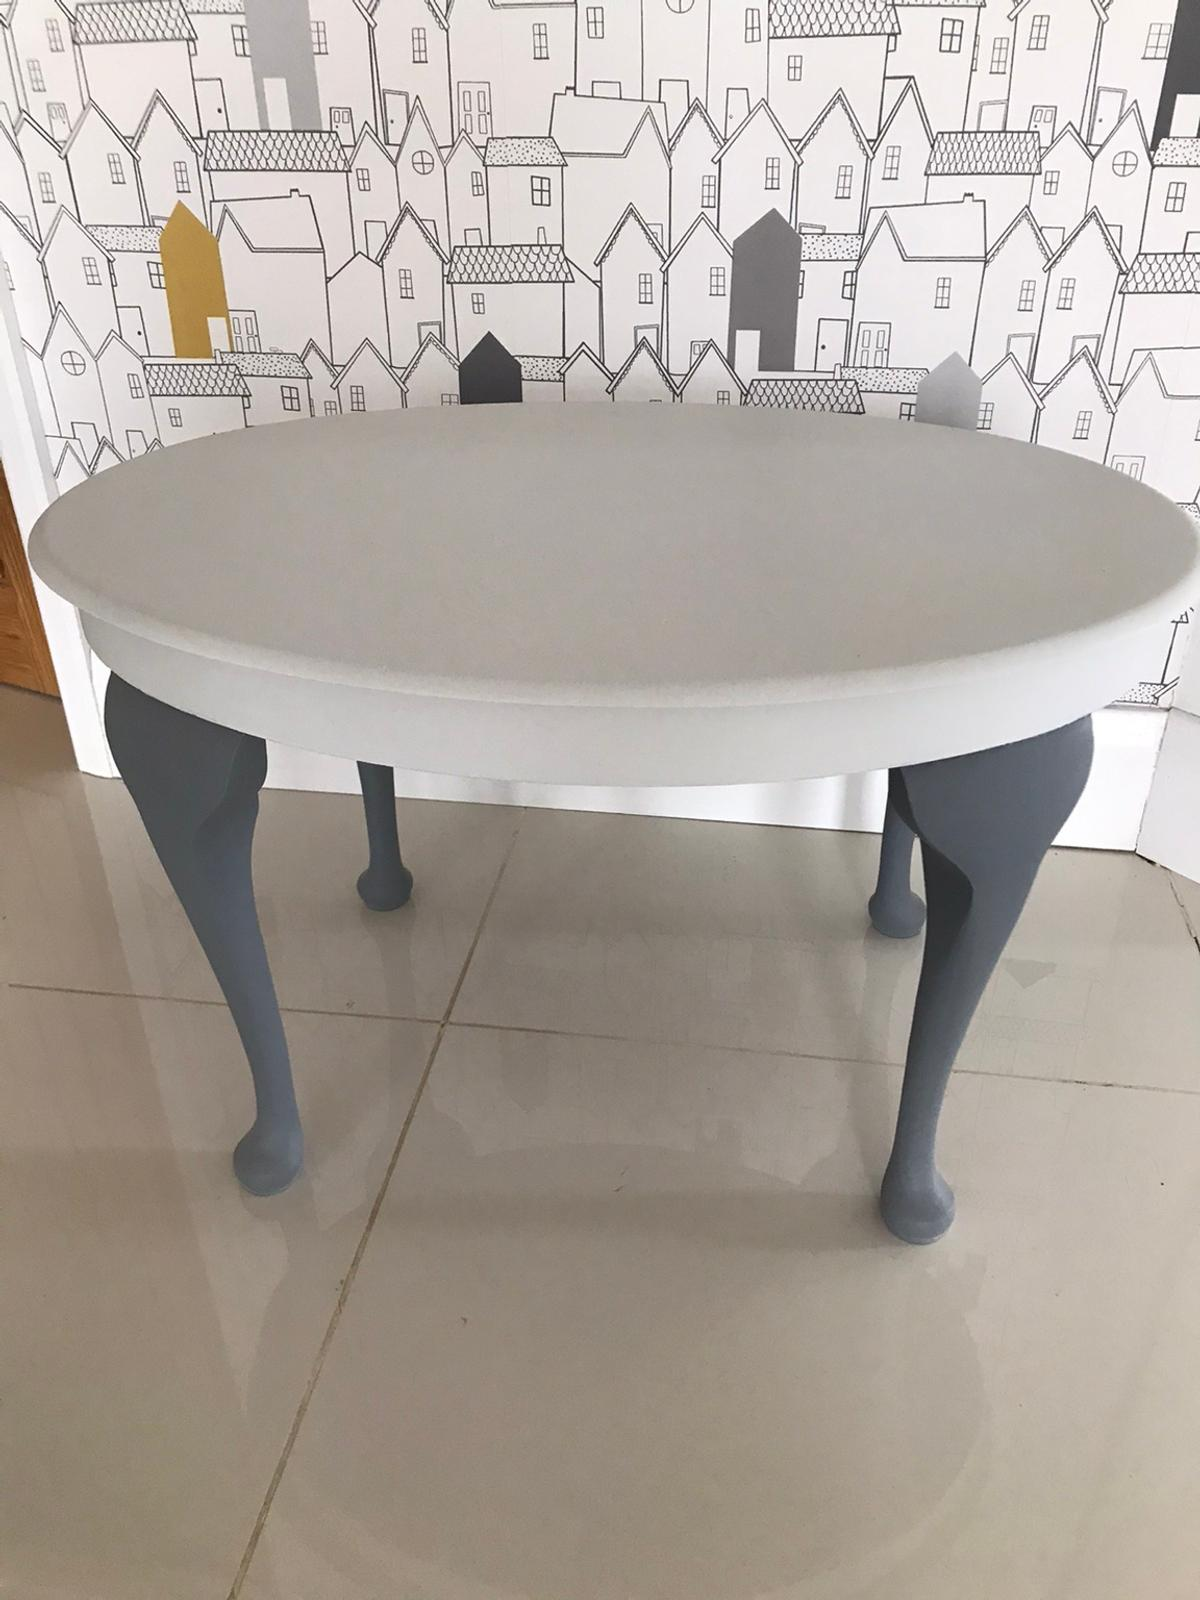 Small oval table with ornate shaped legs. Painted in wolf whistle and greyhound Frenchic chalk paint. Measures 68 cm x 49 cm. 42.5 cm h. Can collect from driveway.